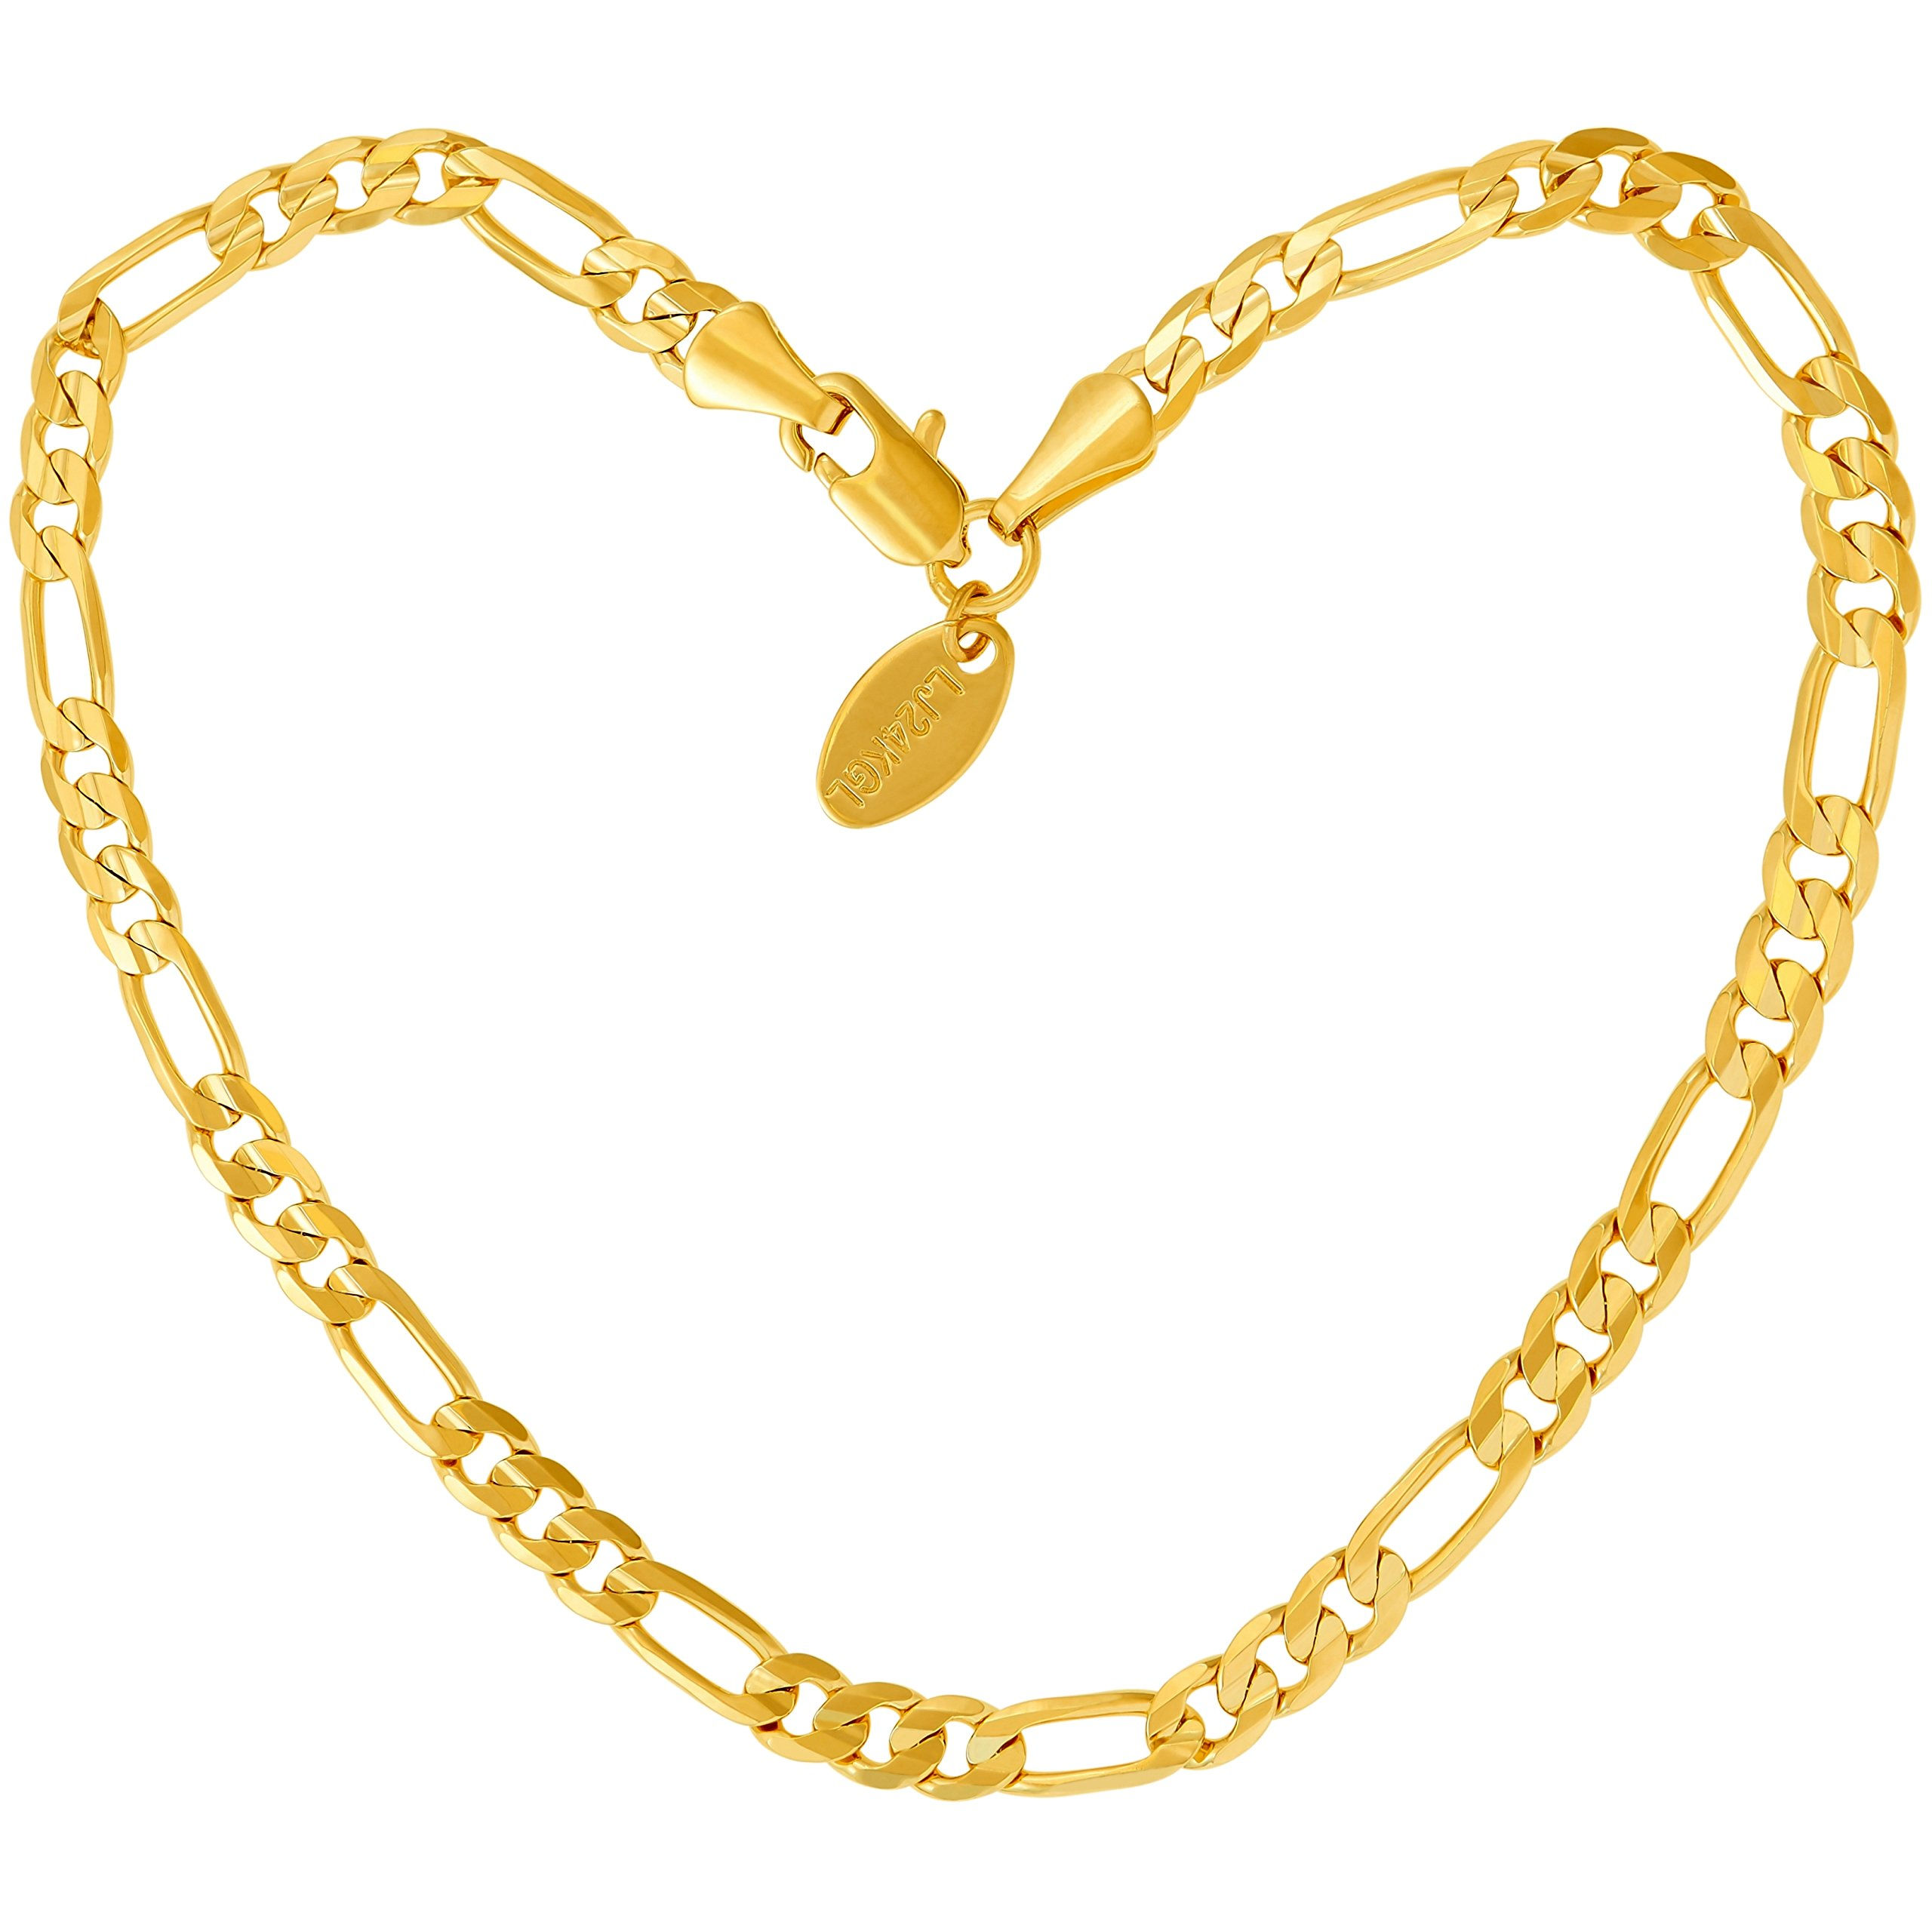 Lifetime Jewelry Anklets for Women Men and Teen Girls - 24K Gold Plated 4mm Figaro Chain - Ankle Bracelet to Wear at Beach or Party - Cute Surfer Anklet - 11 inches (11)